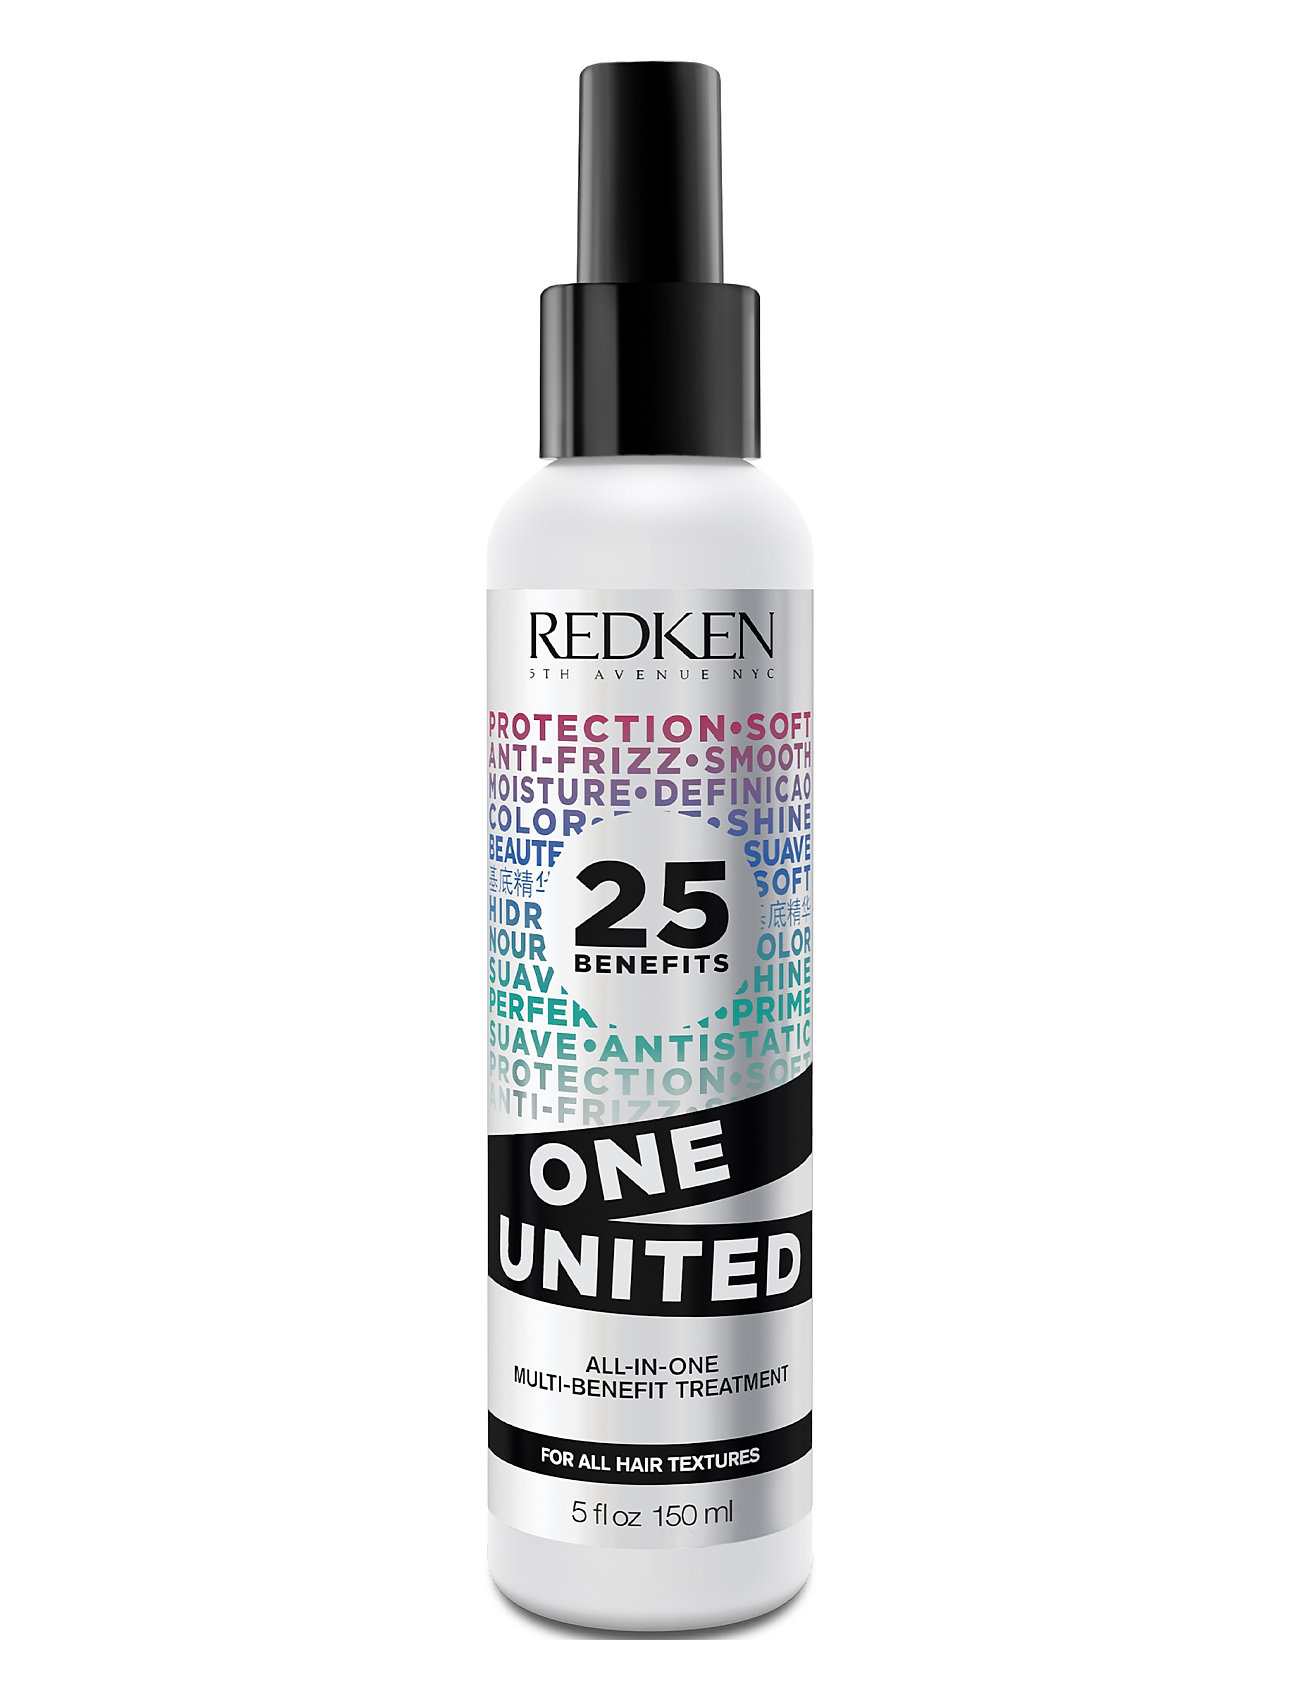 Redken One United Treatment - CLEAR